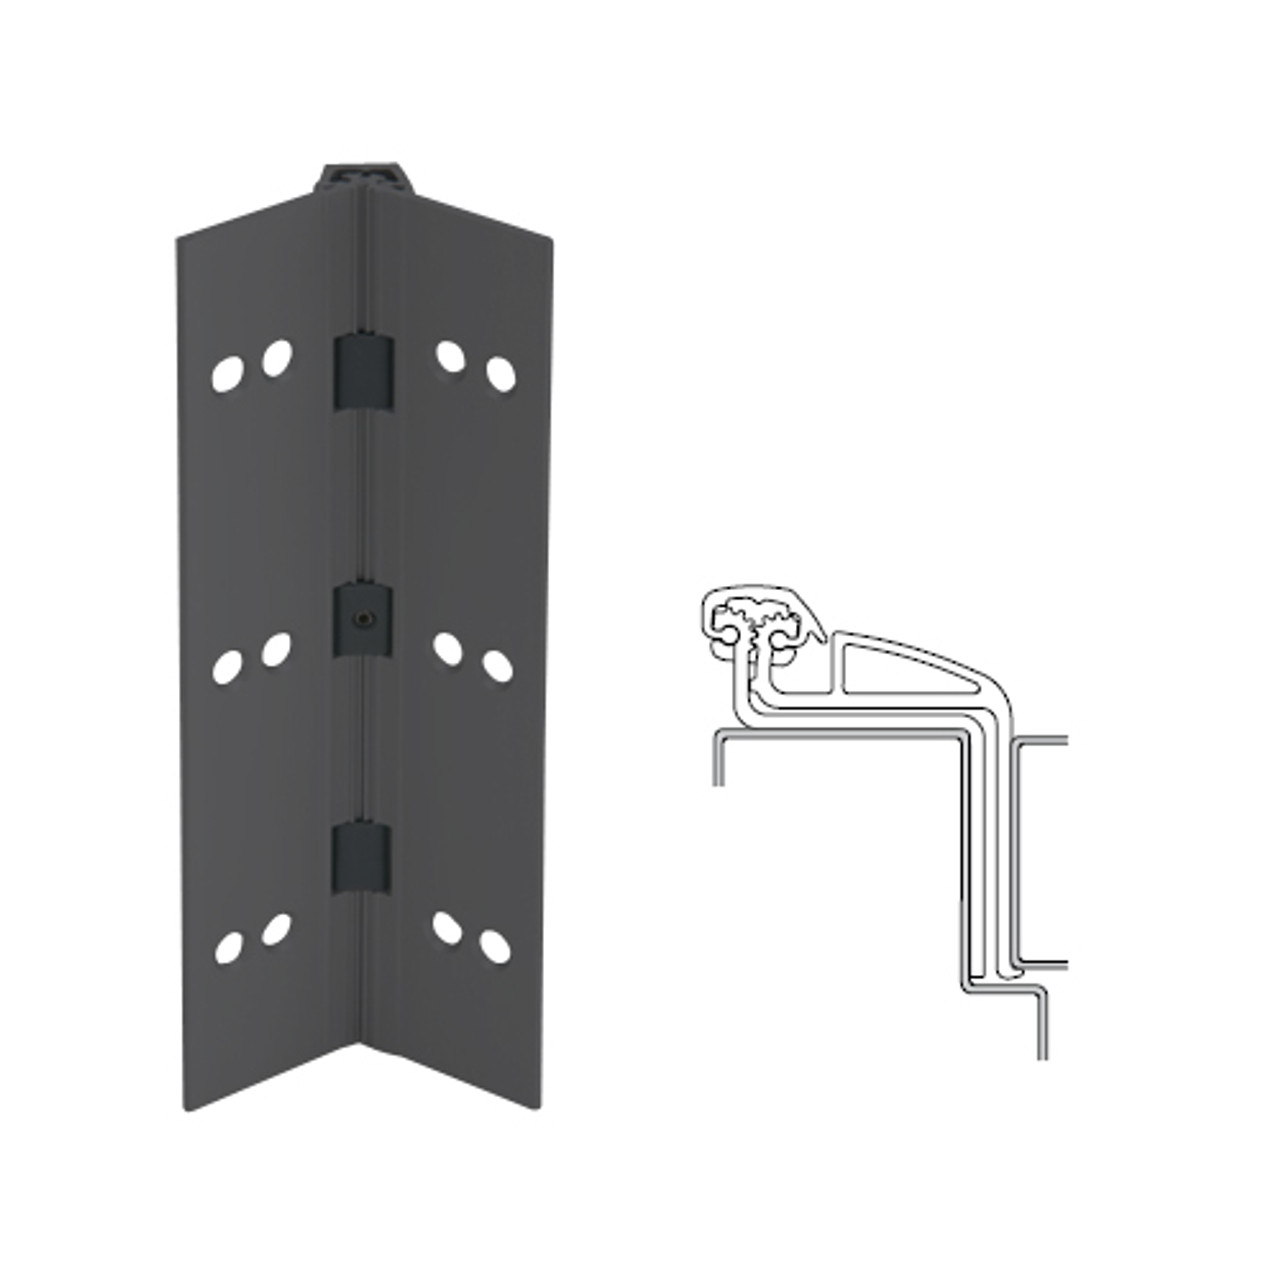 041XY-315AN-85-WD IVES Full Mortise Continuous Geared Hinges with Wood Screws in Anodized Black